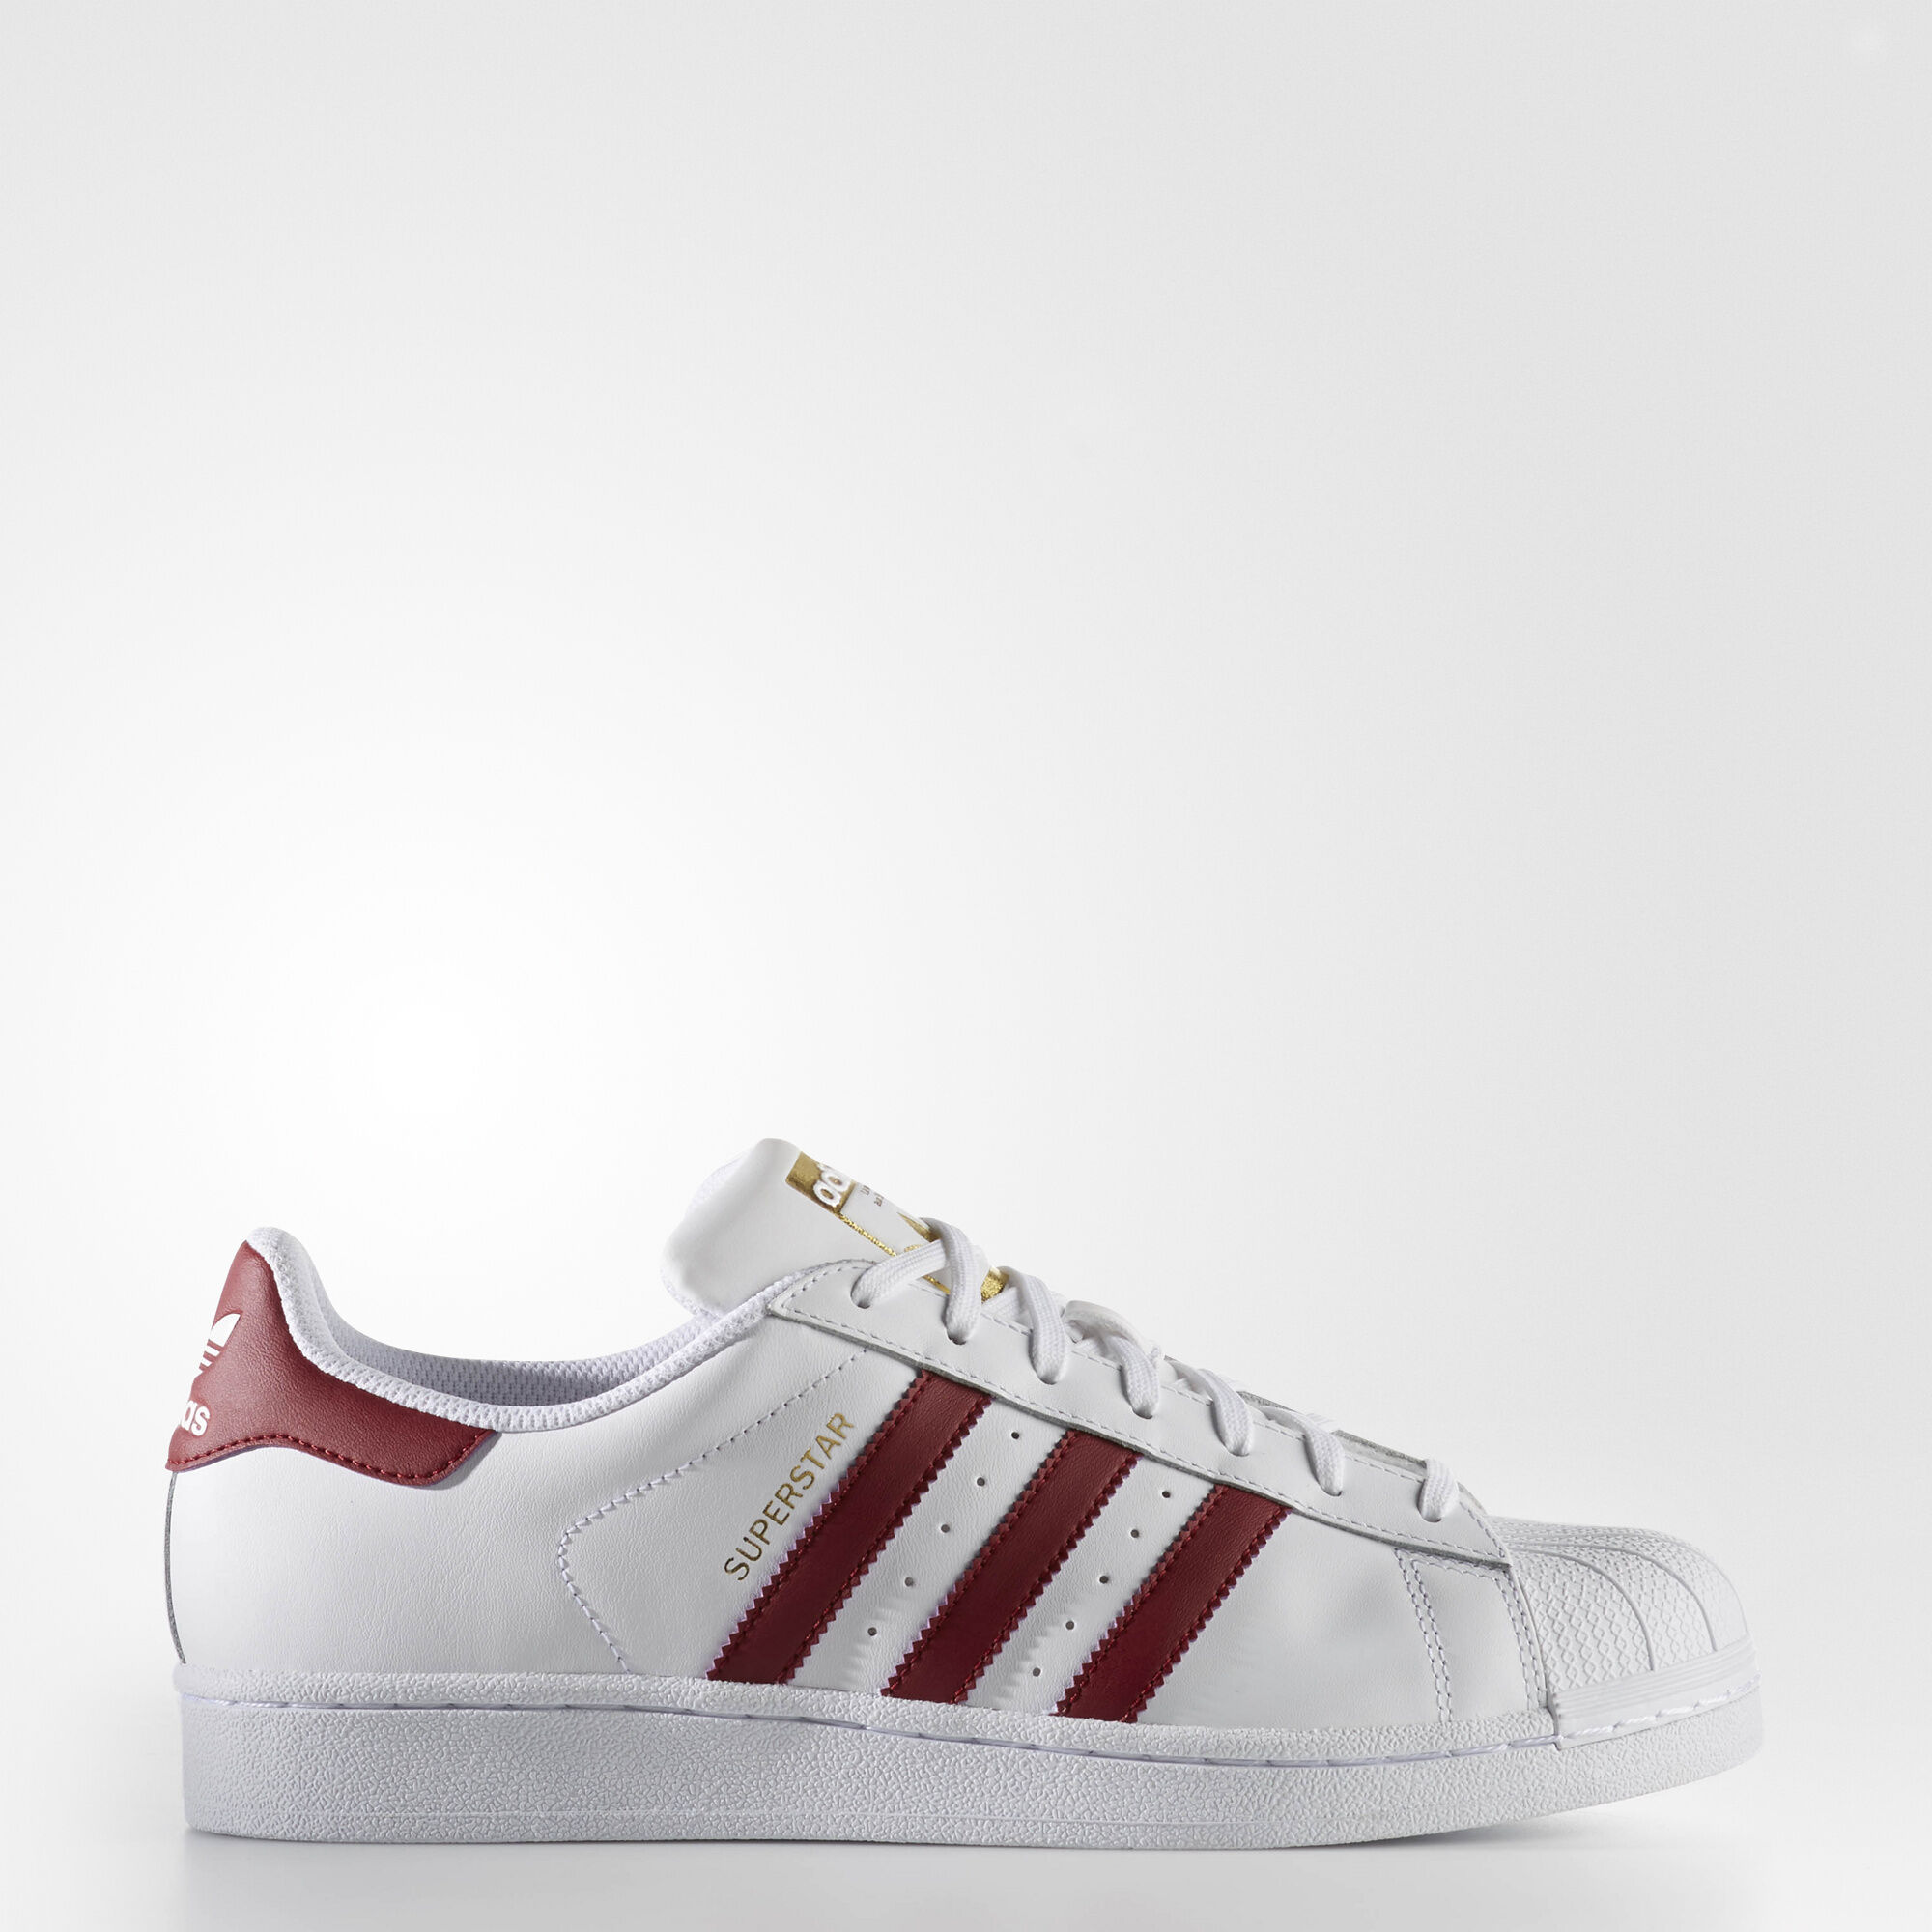 adidas originals dragon white on sale > OFF64% Discounted